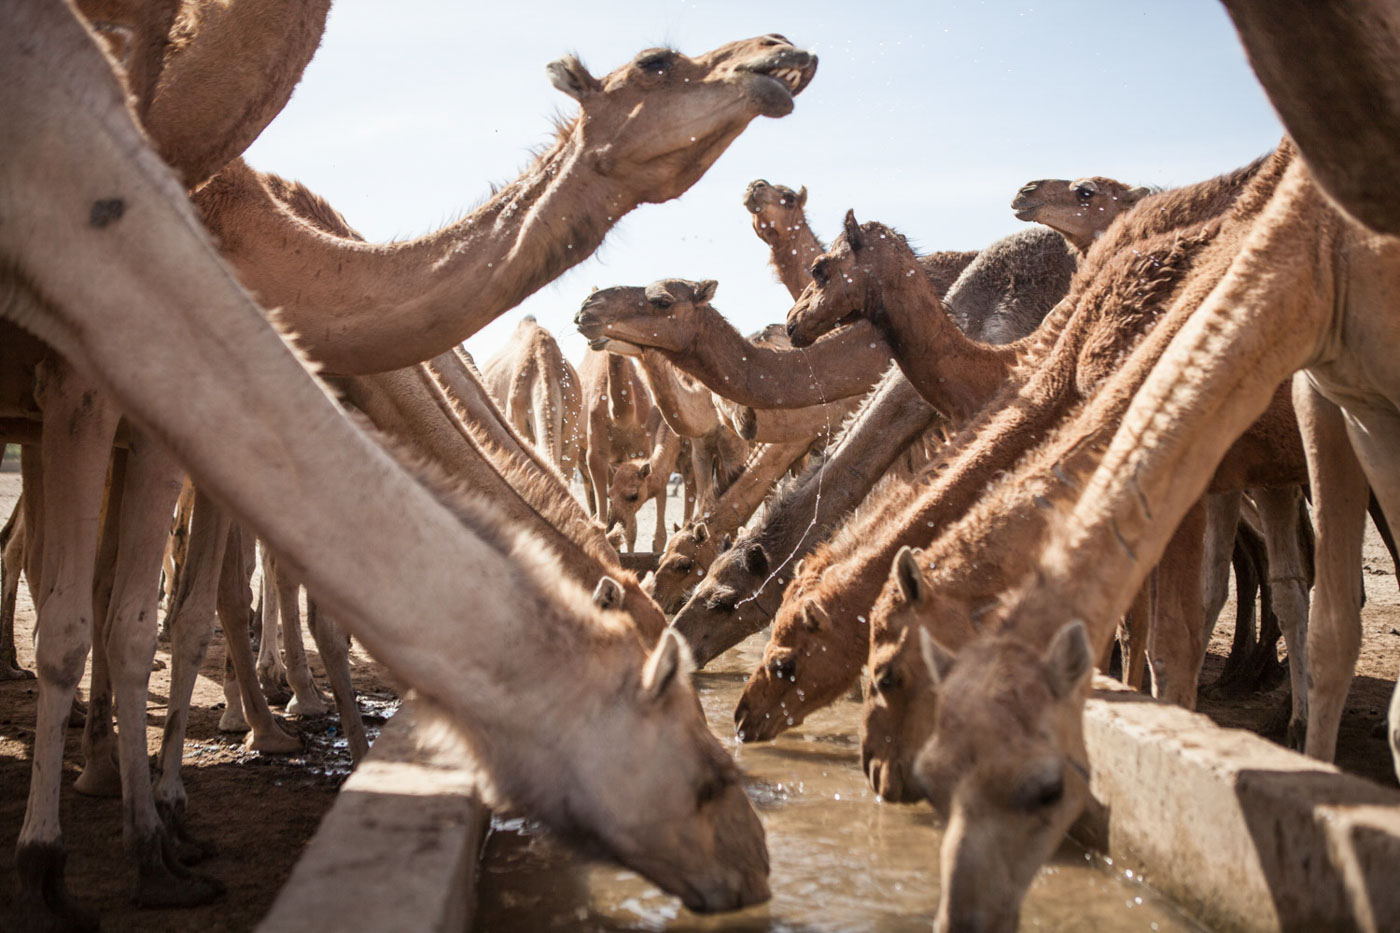 Camels take water in Kindjandi Town/Camp in Diffa, Niger.Kindjandi, a town of over 3000 is now supporting close to 23,000 displaced. Before the crisis, Kindjandi had one well to supply the towns people. Then during Ramadan last year, two displaced herders fought over the already scarce water, resulting in one death. Since then, aid agencies installed 15 more wells and 17 bladders containing 10,000L each (filled by truck twice a day) in order to provide enough water for the town, displaced people and the estimated 20,000 animals that visit each day in need of water. But agencies are worried as this is only a temporary solution that is not sustainable.